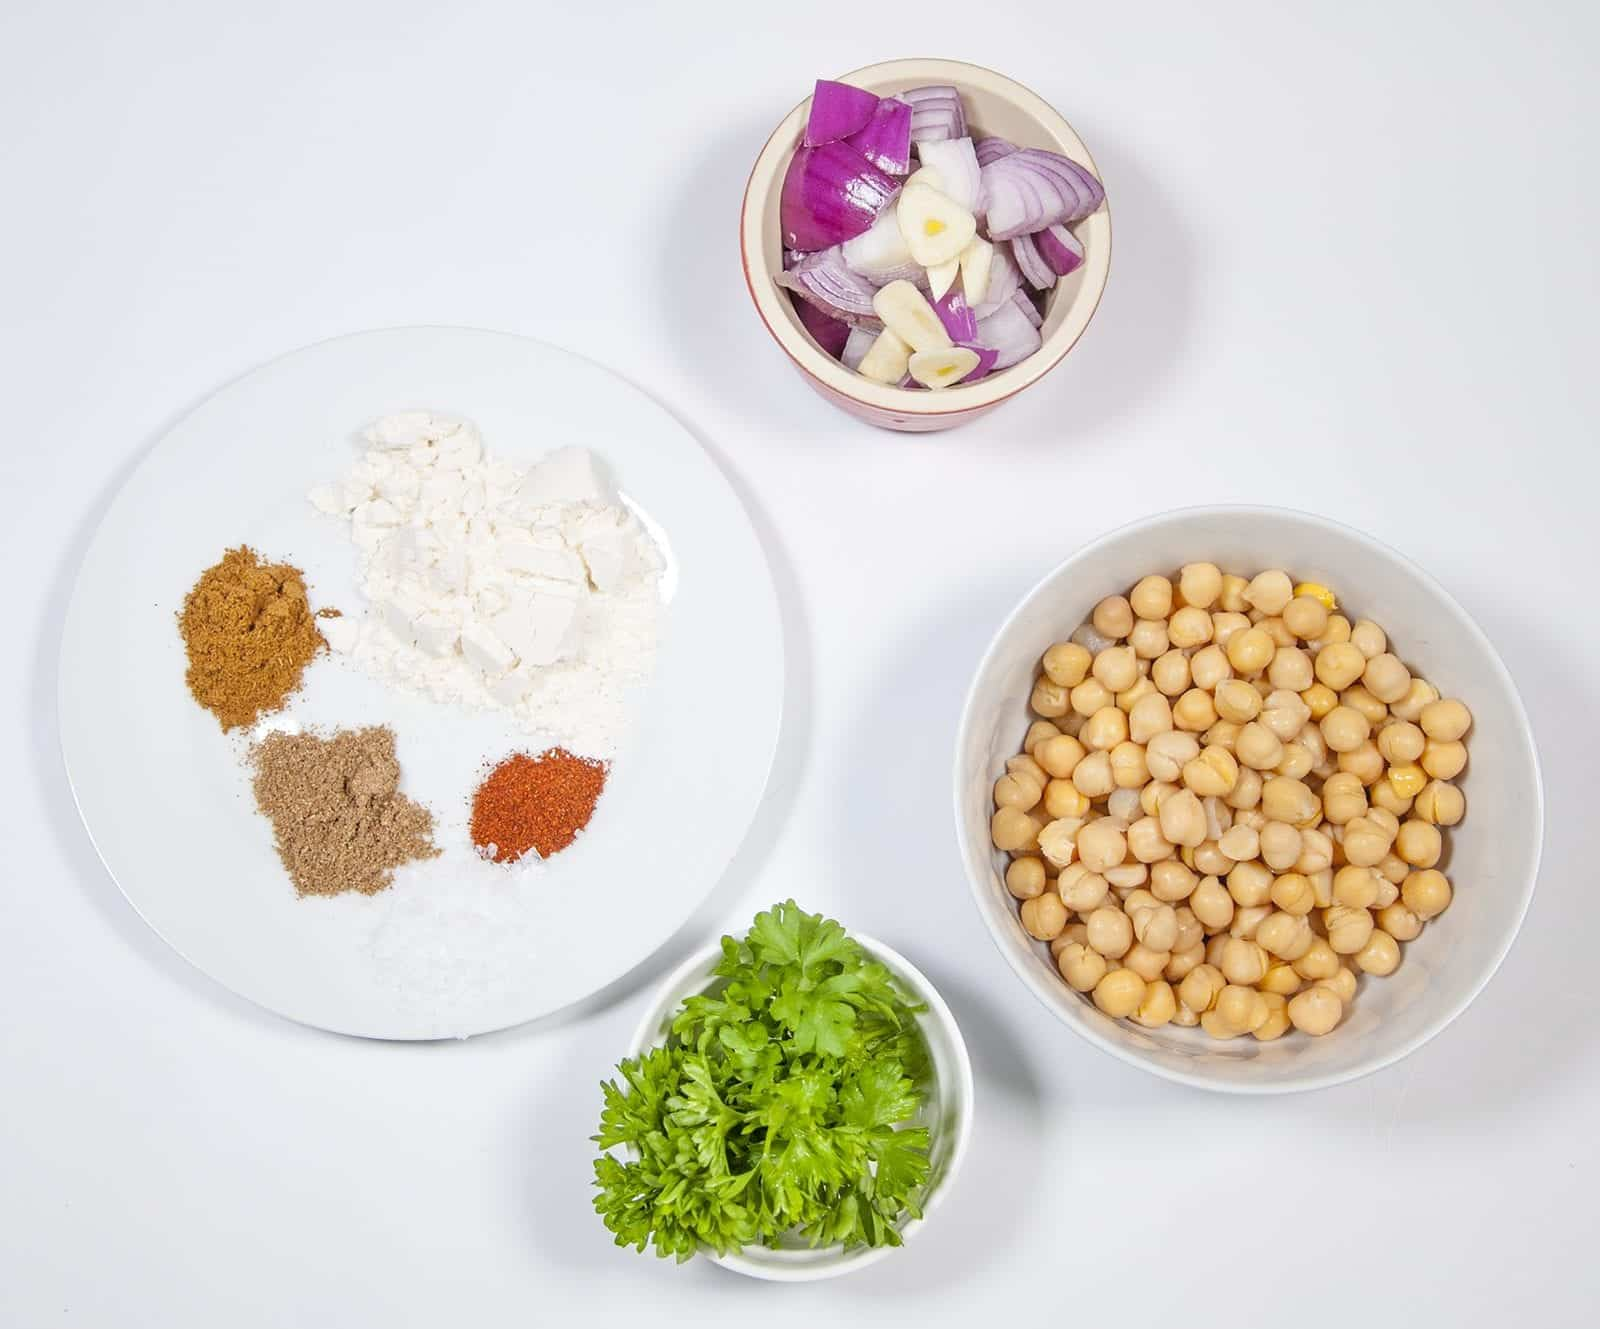 Gather the ingredients together   https://theyumyumclub.com/2019/07/05/falafels-fit-for-the-pharaohs/